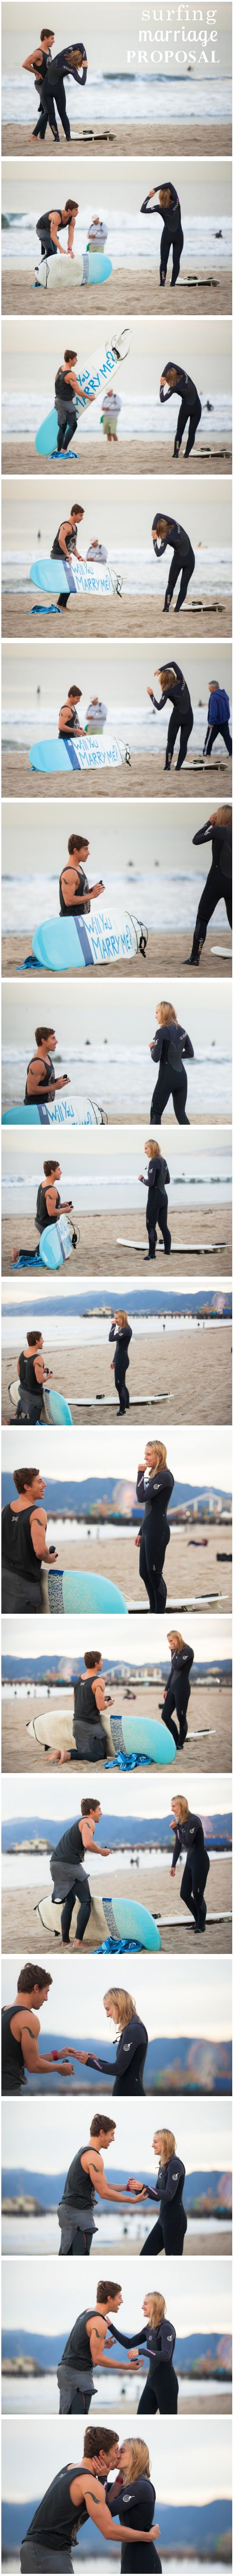 Surfboard Proposal. http://howheasked.com/surfing-marriage-proposal - Find or Create the ring of your dreams at Agape Diamonds- www.diamondslabcreated.com